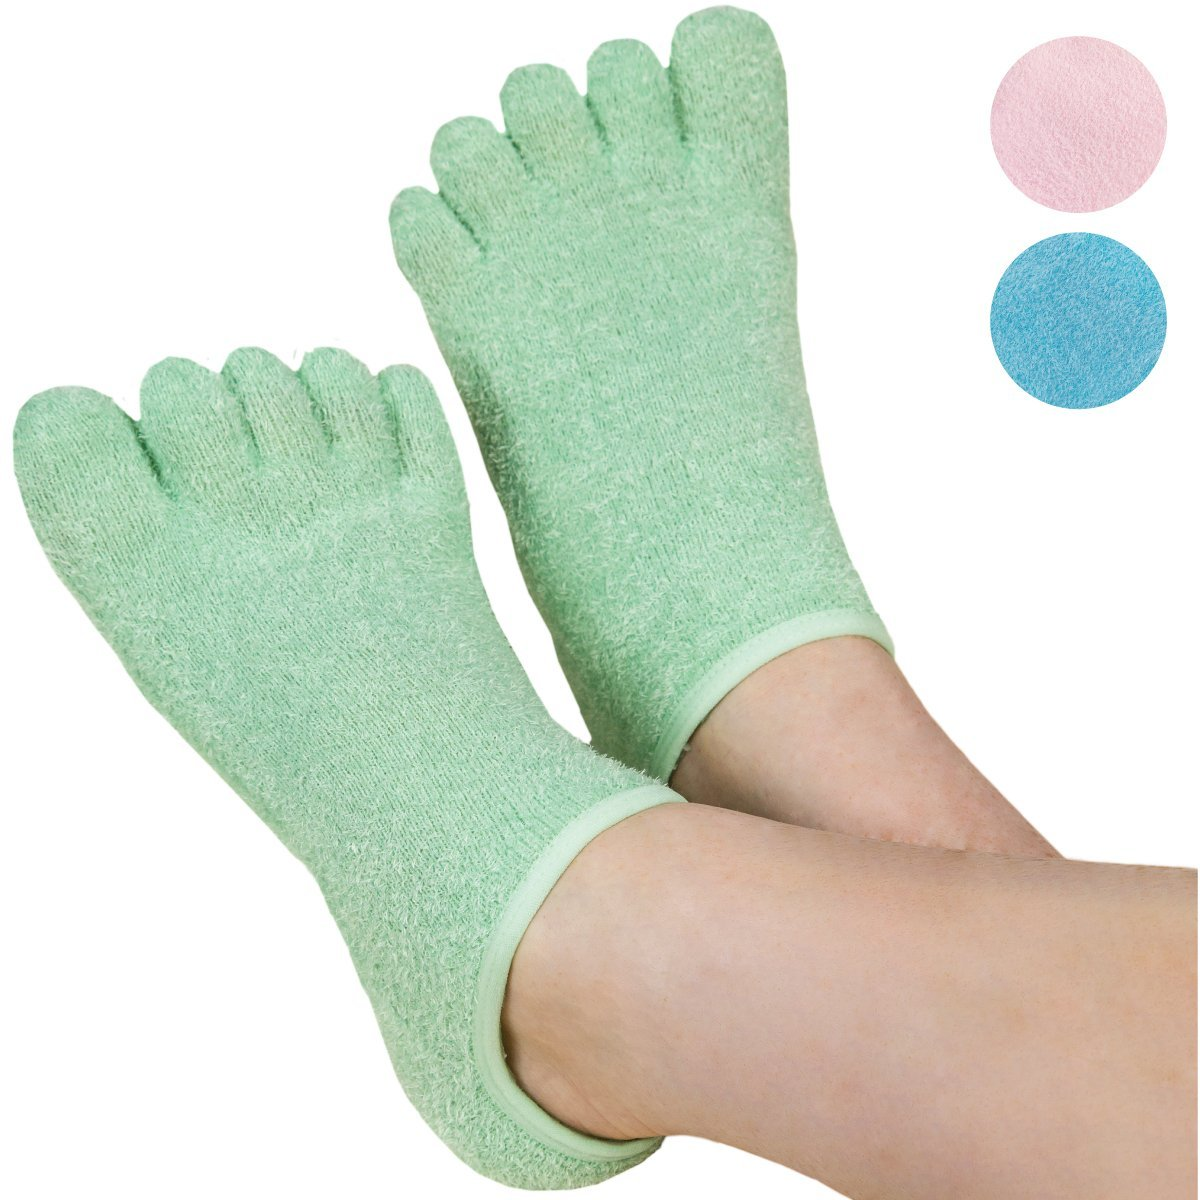 LE EMILIE 5 Toe Moisturizing Gel Socks | Perfect for Healing Dry Cracked Heels and Feet | Infused with an Aromatherapy Blend of Lavender and Jojoba Oil | 1 Pair, Seafoam Green